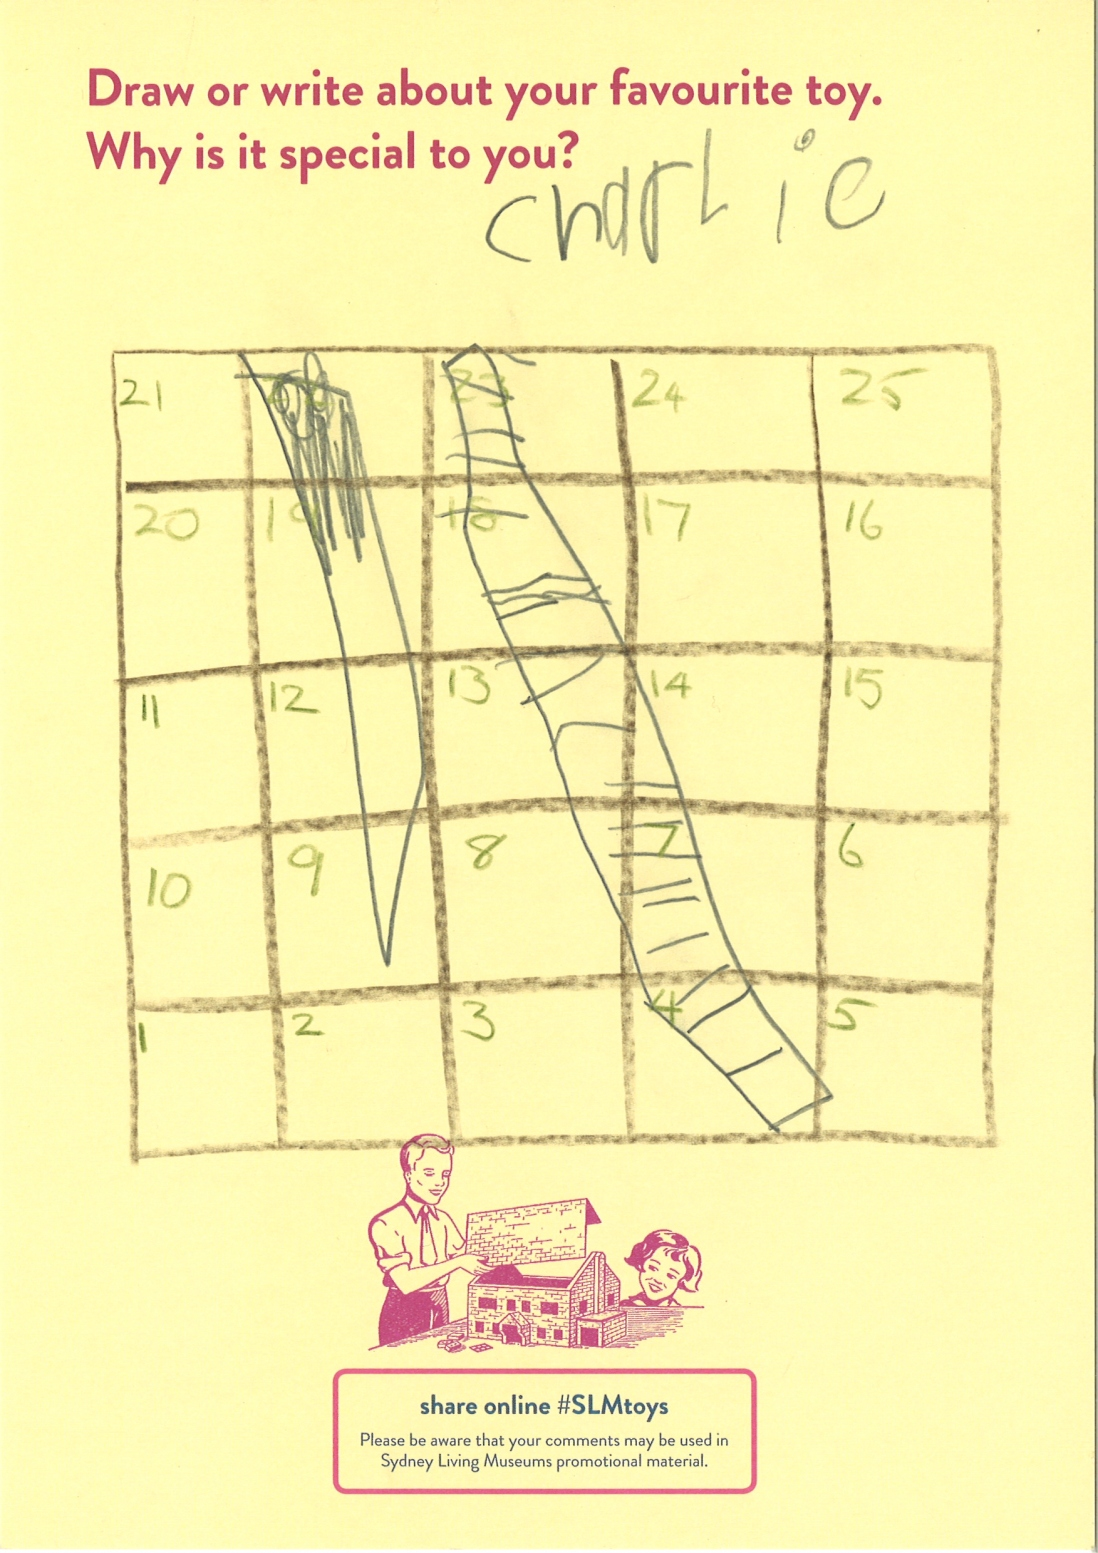 A child's drawing of snakes and ladders board game